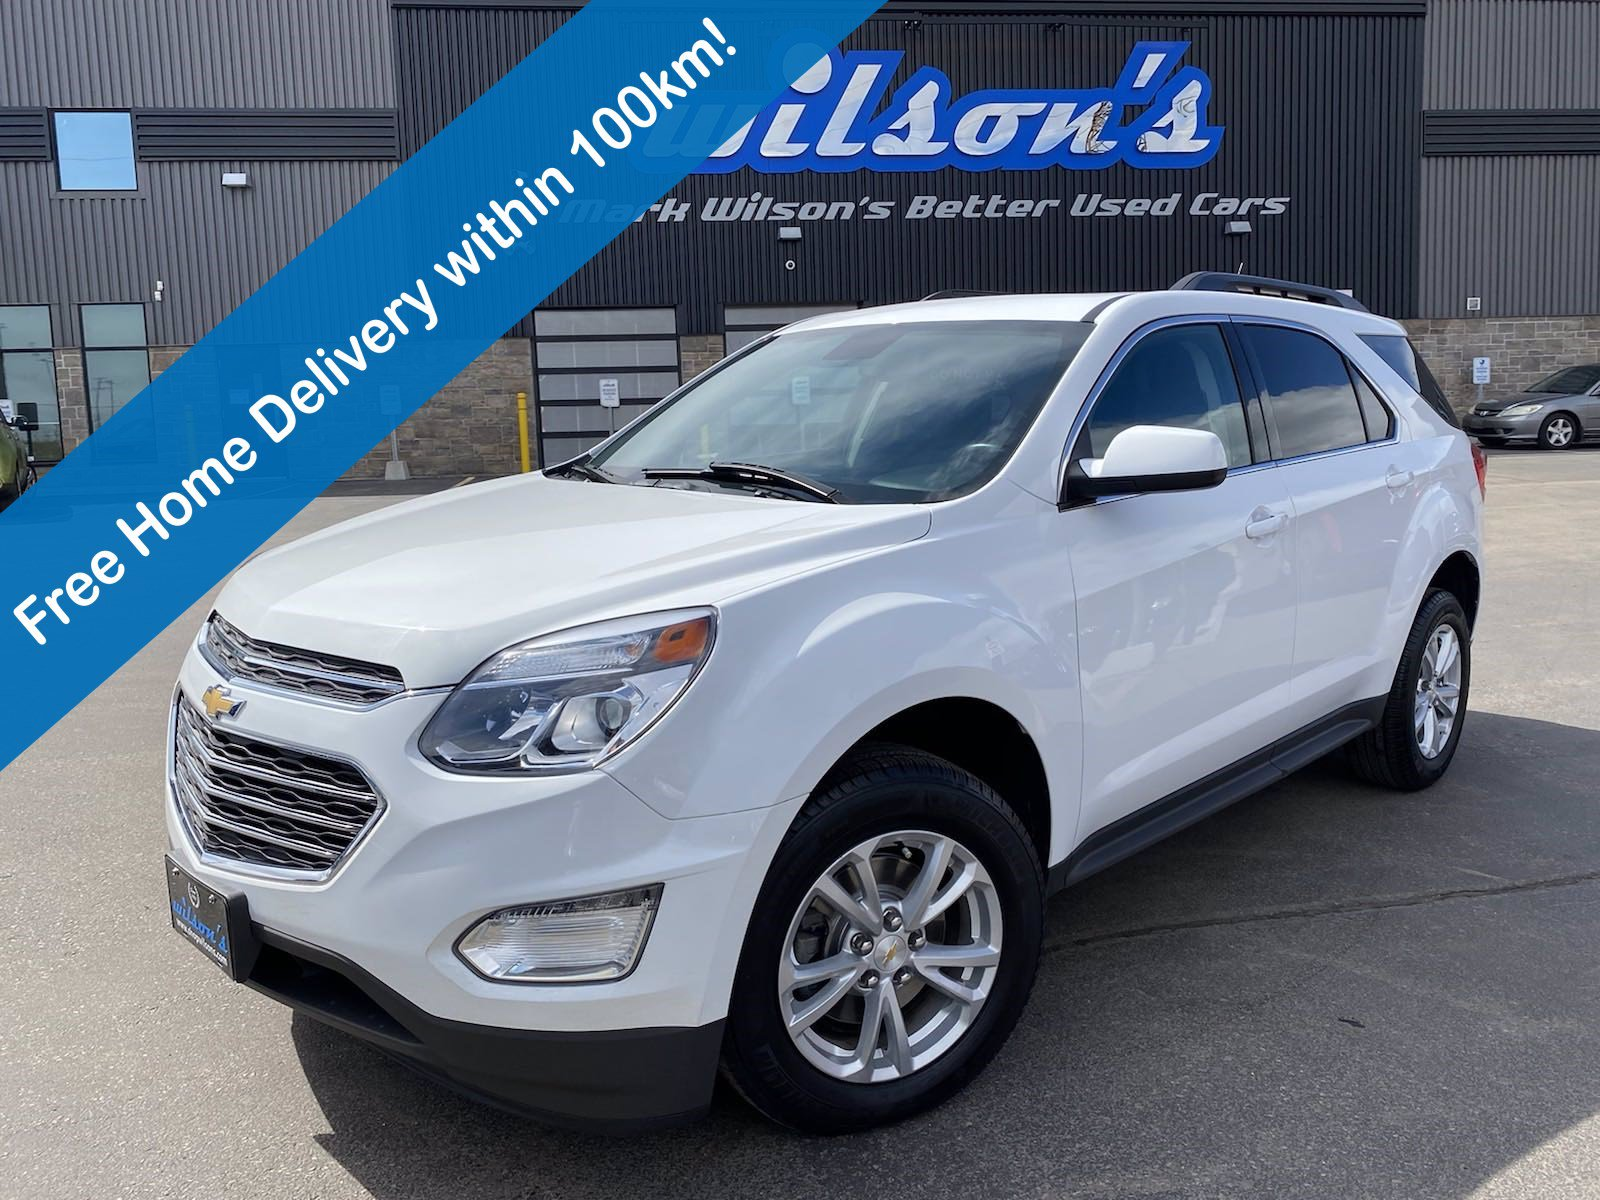 Certified Pre-Owned 2016 Chevrolet Equinox LT, Sunroof, Navigation, Power Liftgate, Rear Camera, Bluetooth, Power Driver's Seat and more!